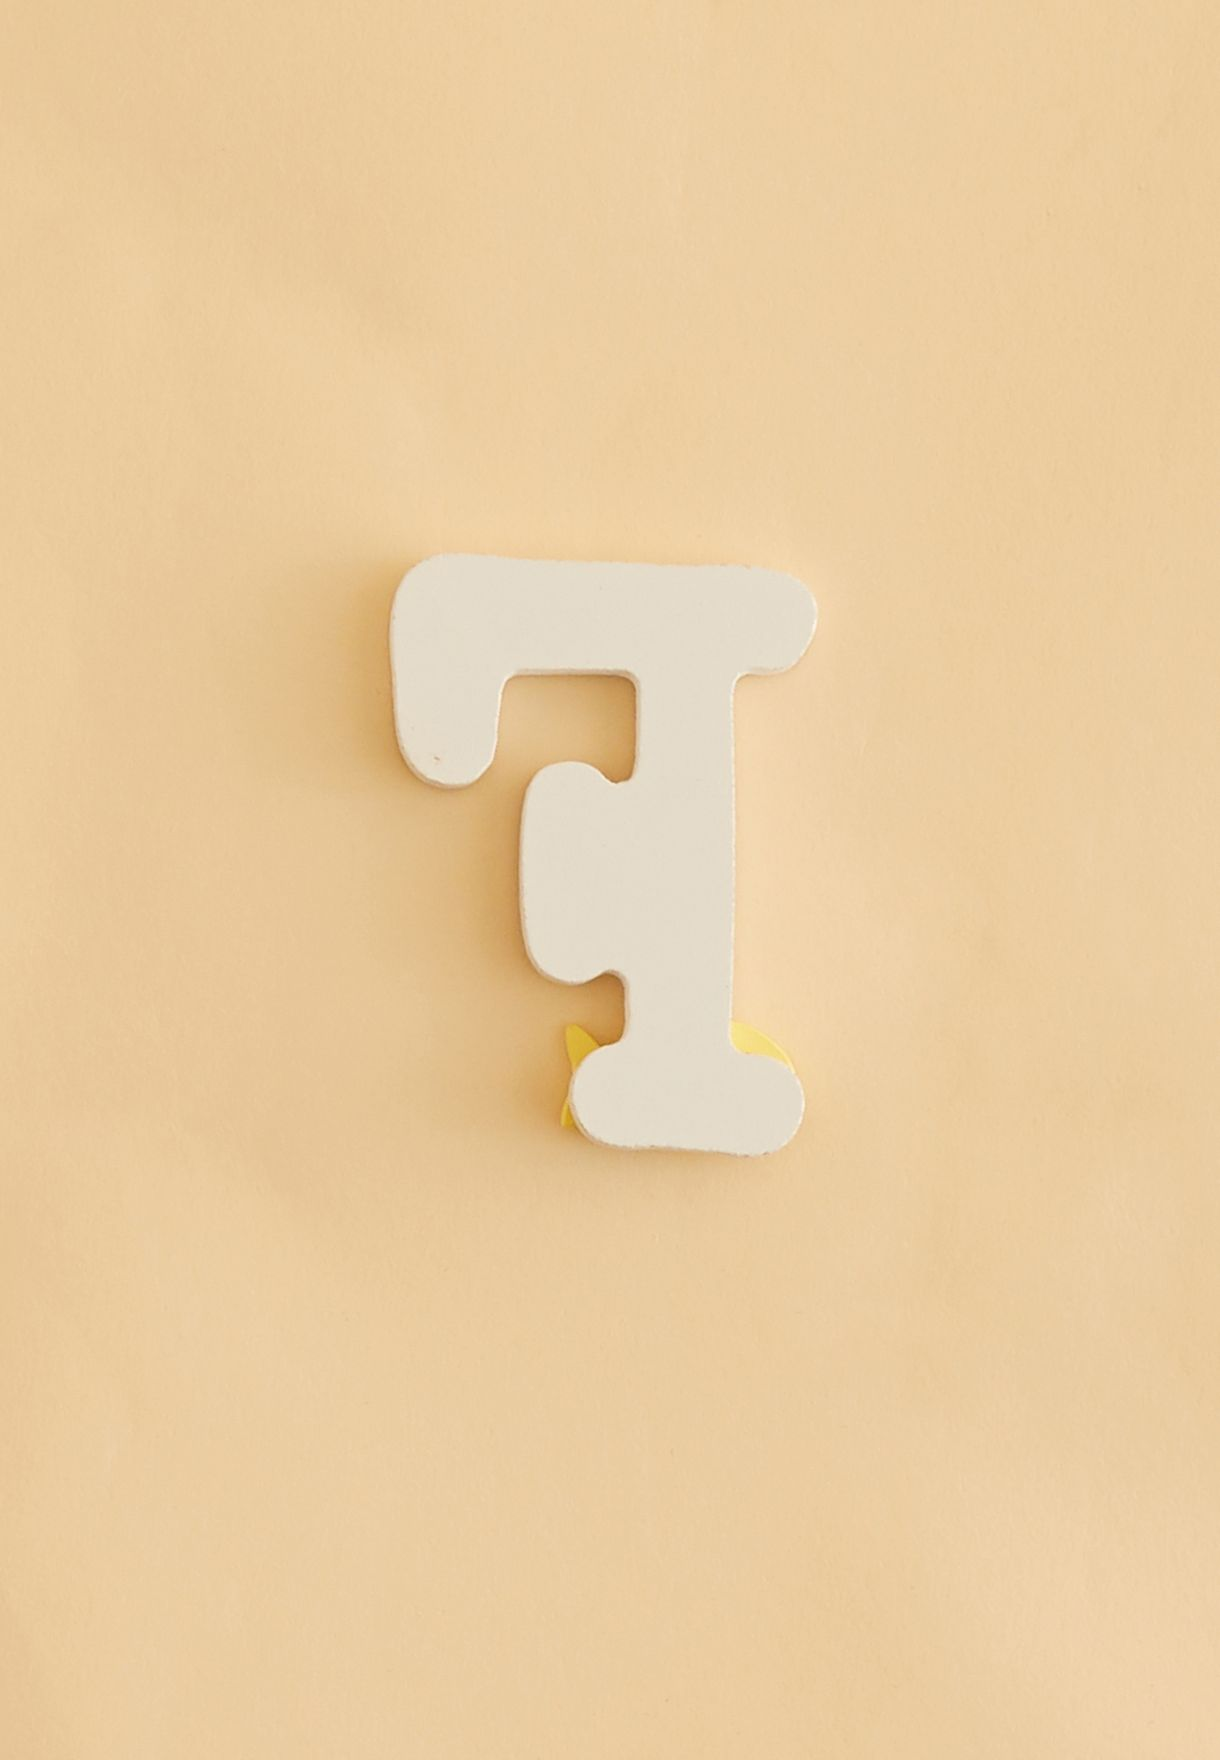 Initial F Wooden Letter